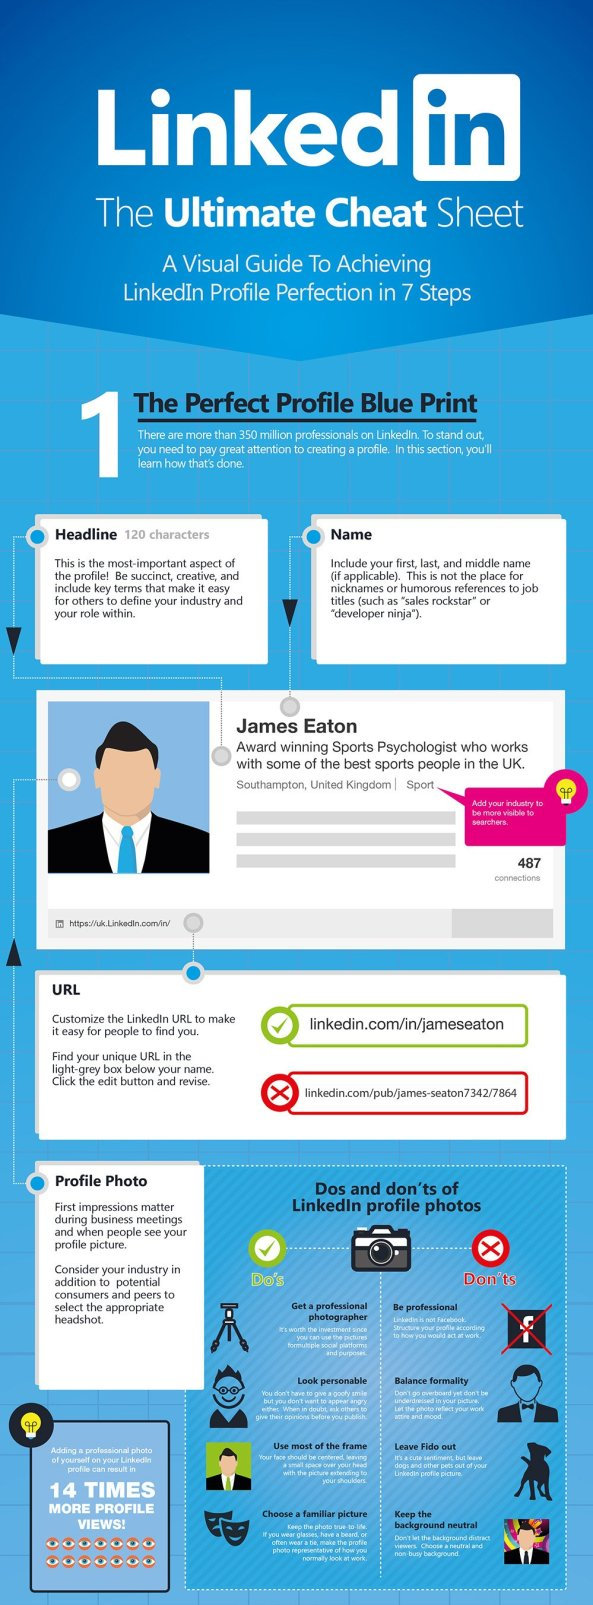 linkedin ultimate cheat sheet